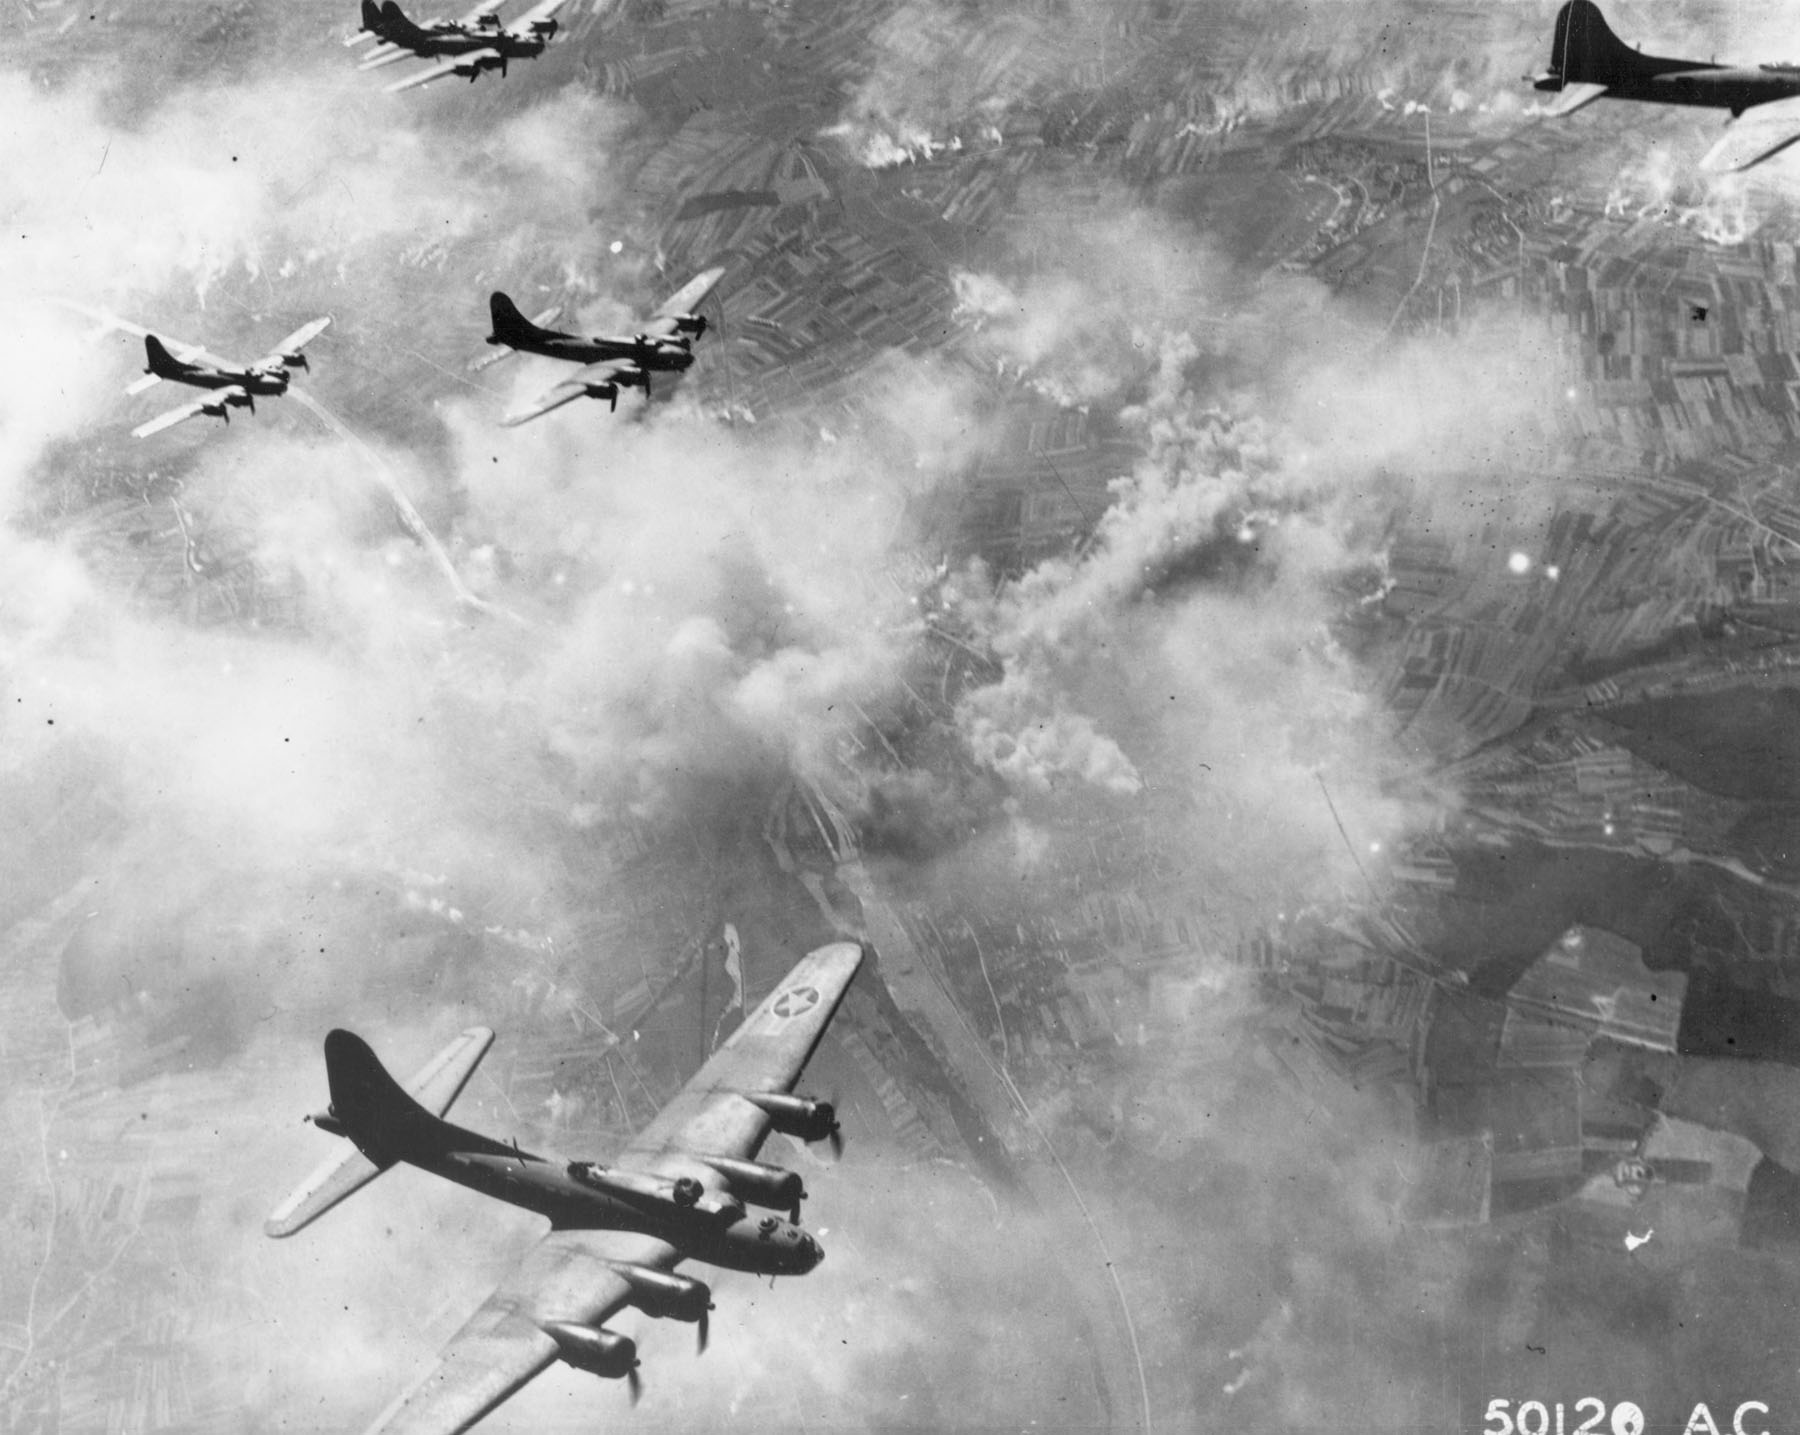 Boeing B-17F formation over Schweinfurt, Germany, on Aug. 17, 1943. (U.S. Air Force photo)